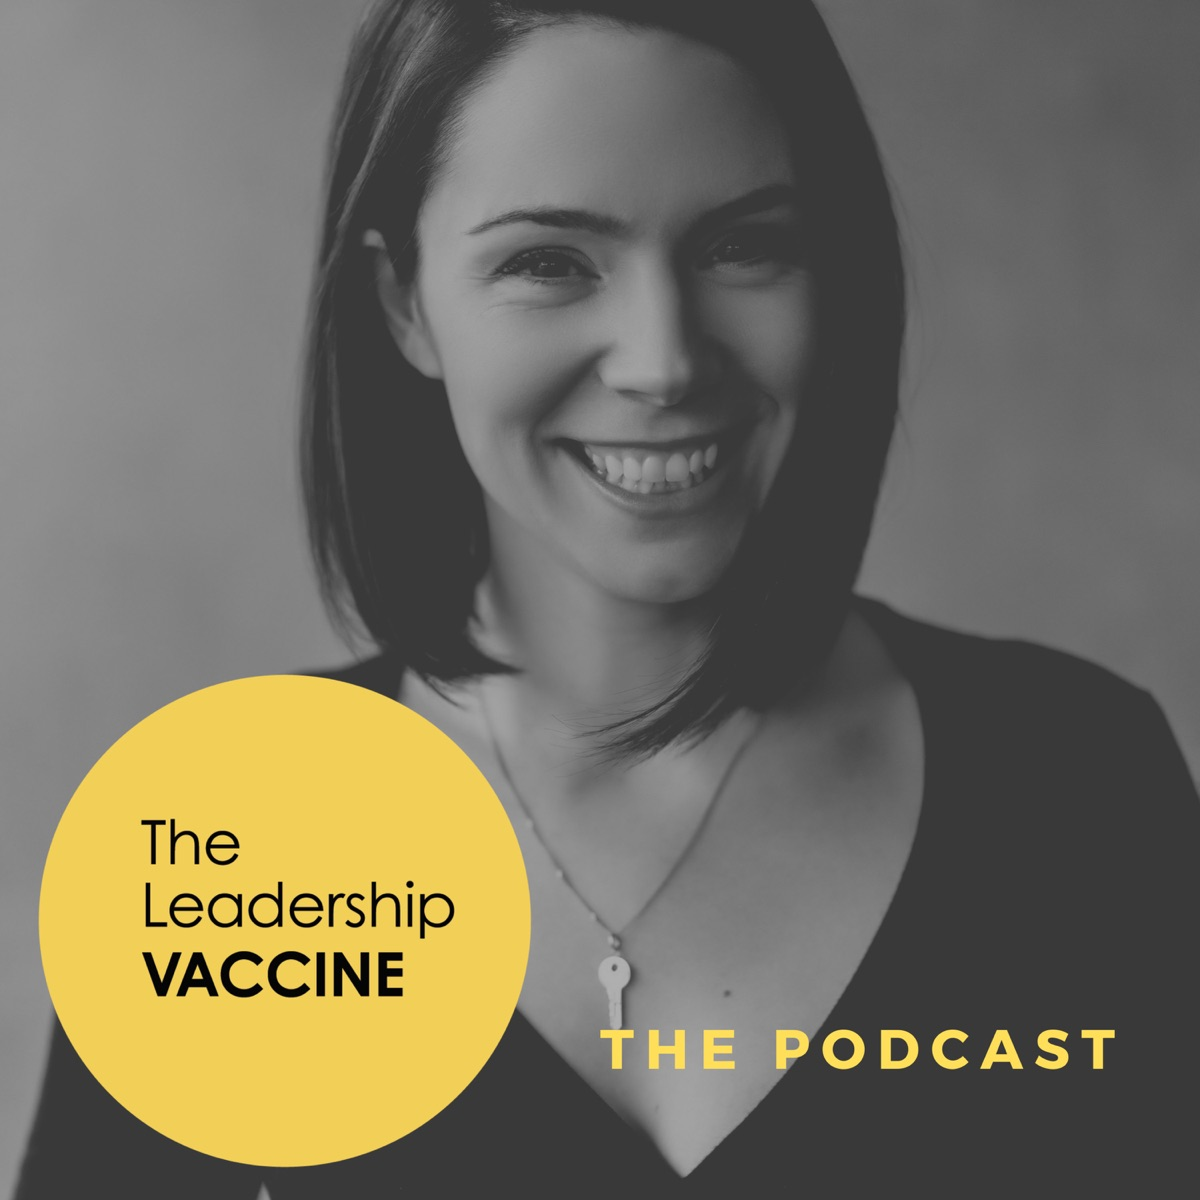 The Leadership Vaccine